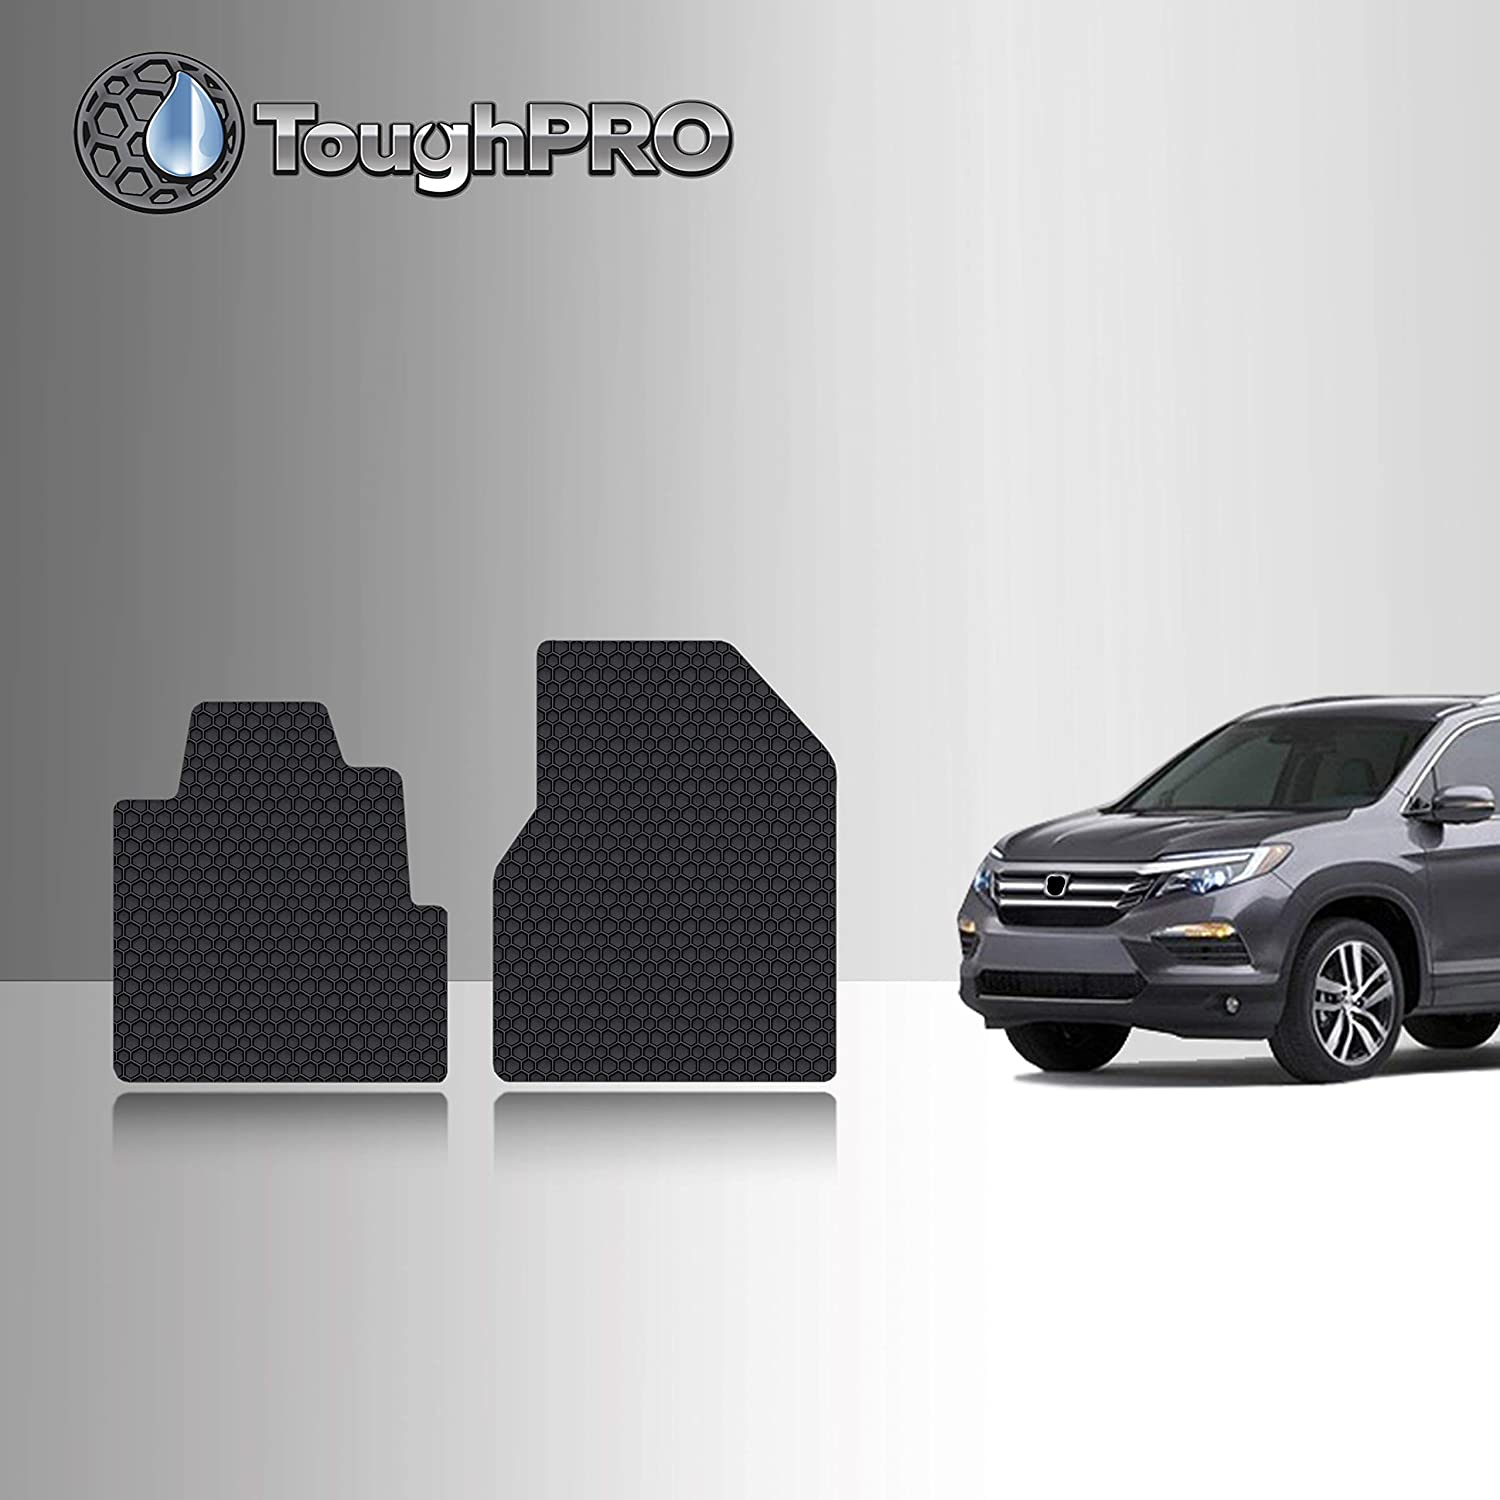 2007 2003 2004 2006 - Black Rubber TOUGHPRO Floor Mat Accessories 1st Heavy Duty - 2nd 2005 All Weather 3rd Row Compatible with Honda Pilot 2008 Made in USA